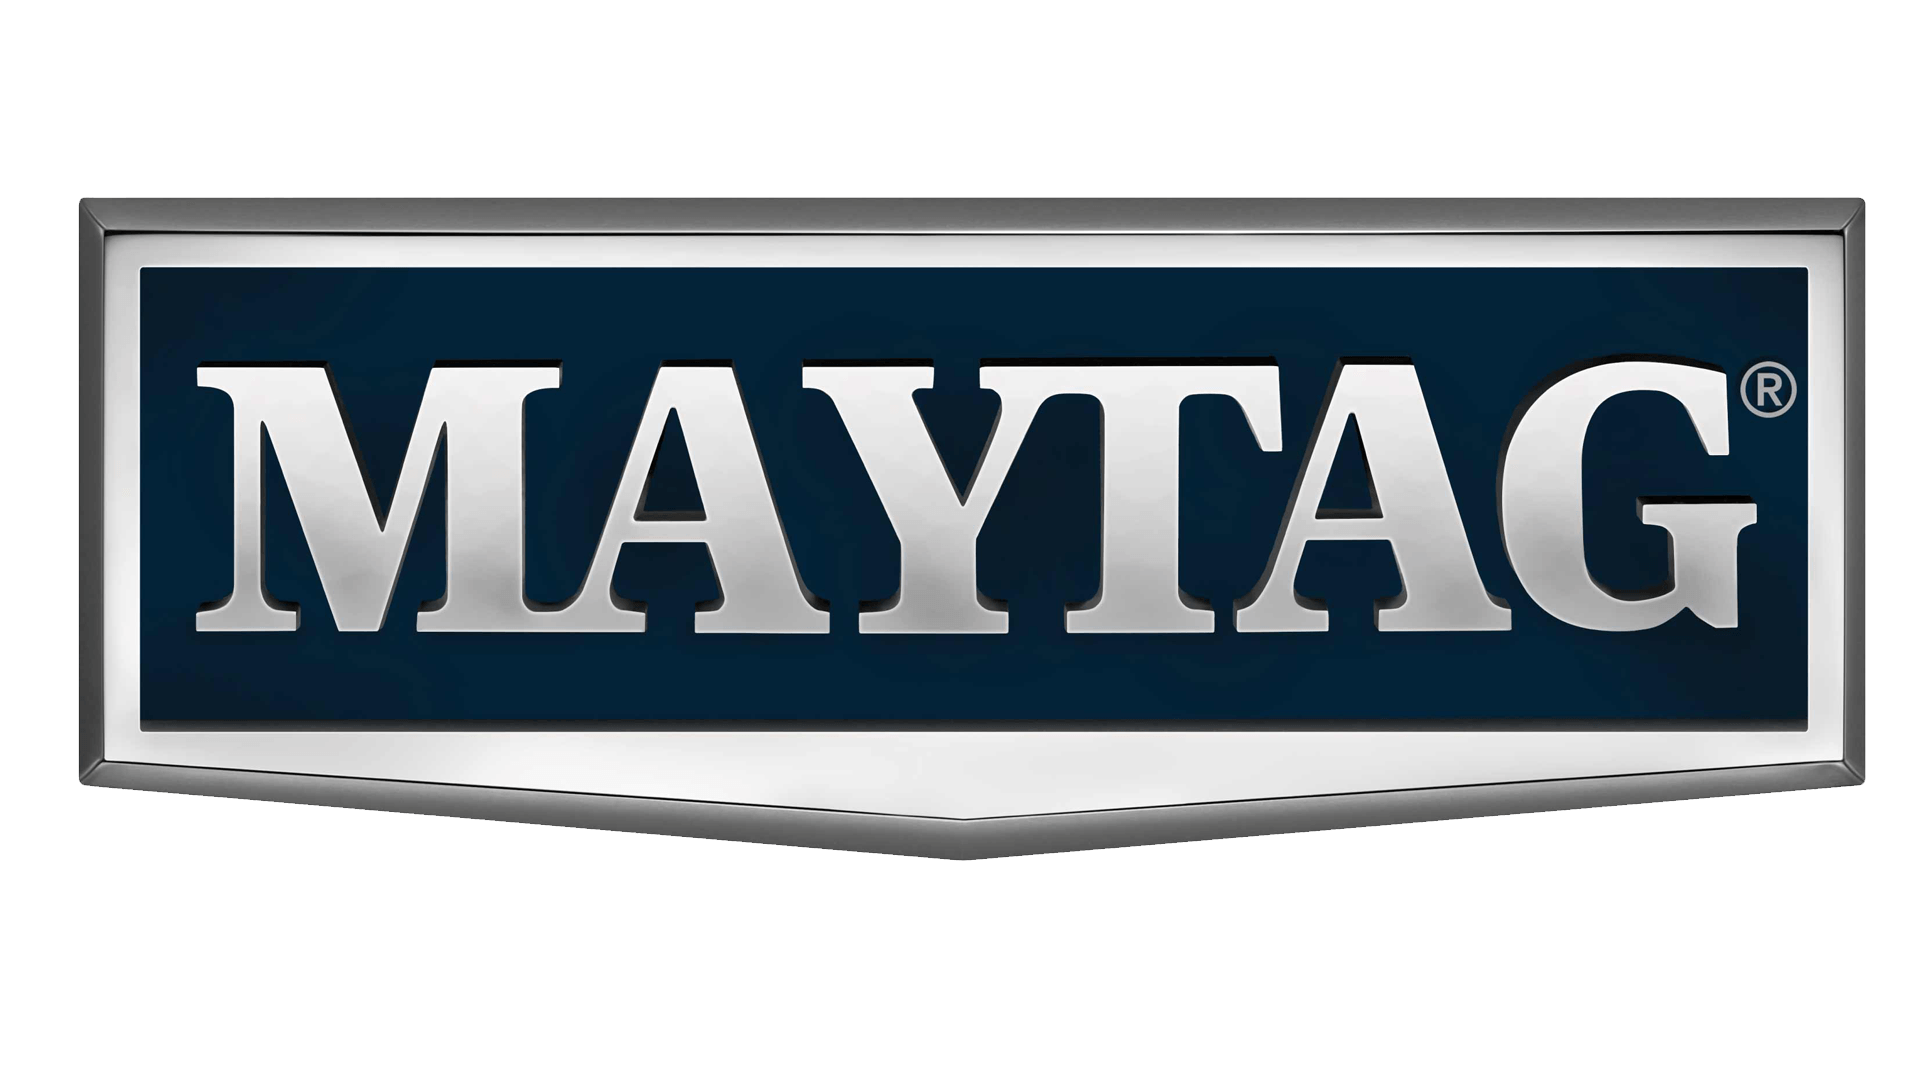 Maytag Logo - Maytag Logo, Maytag Symbol, Meaning, History and Evolution